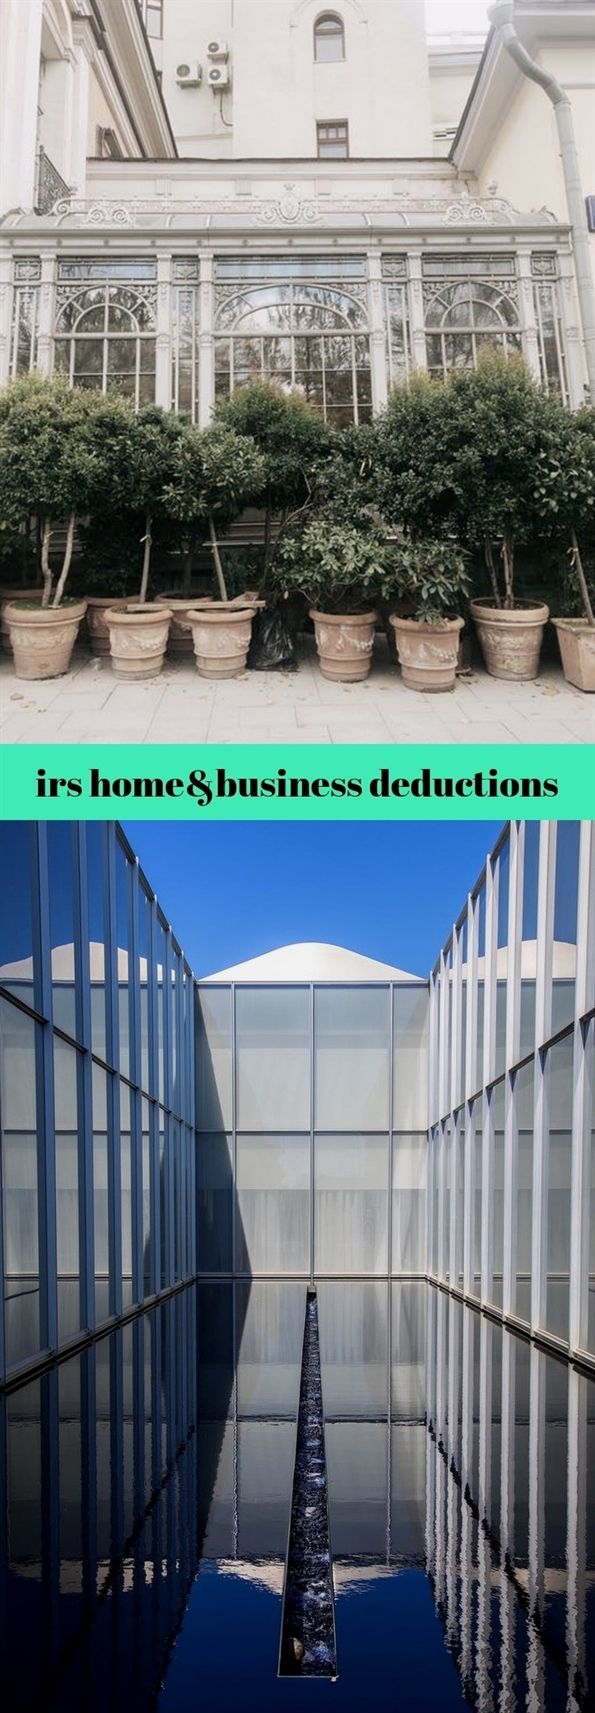 Irs Home Business Deductions 167 20180801125844 49 Business Cards